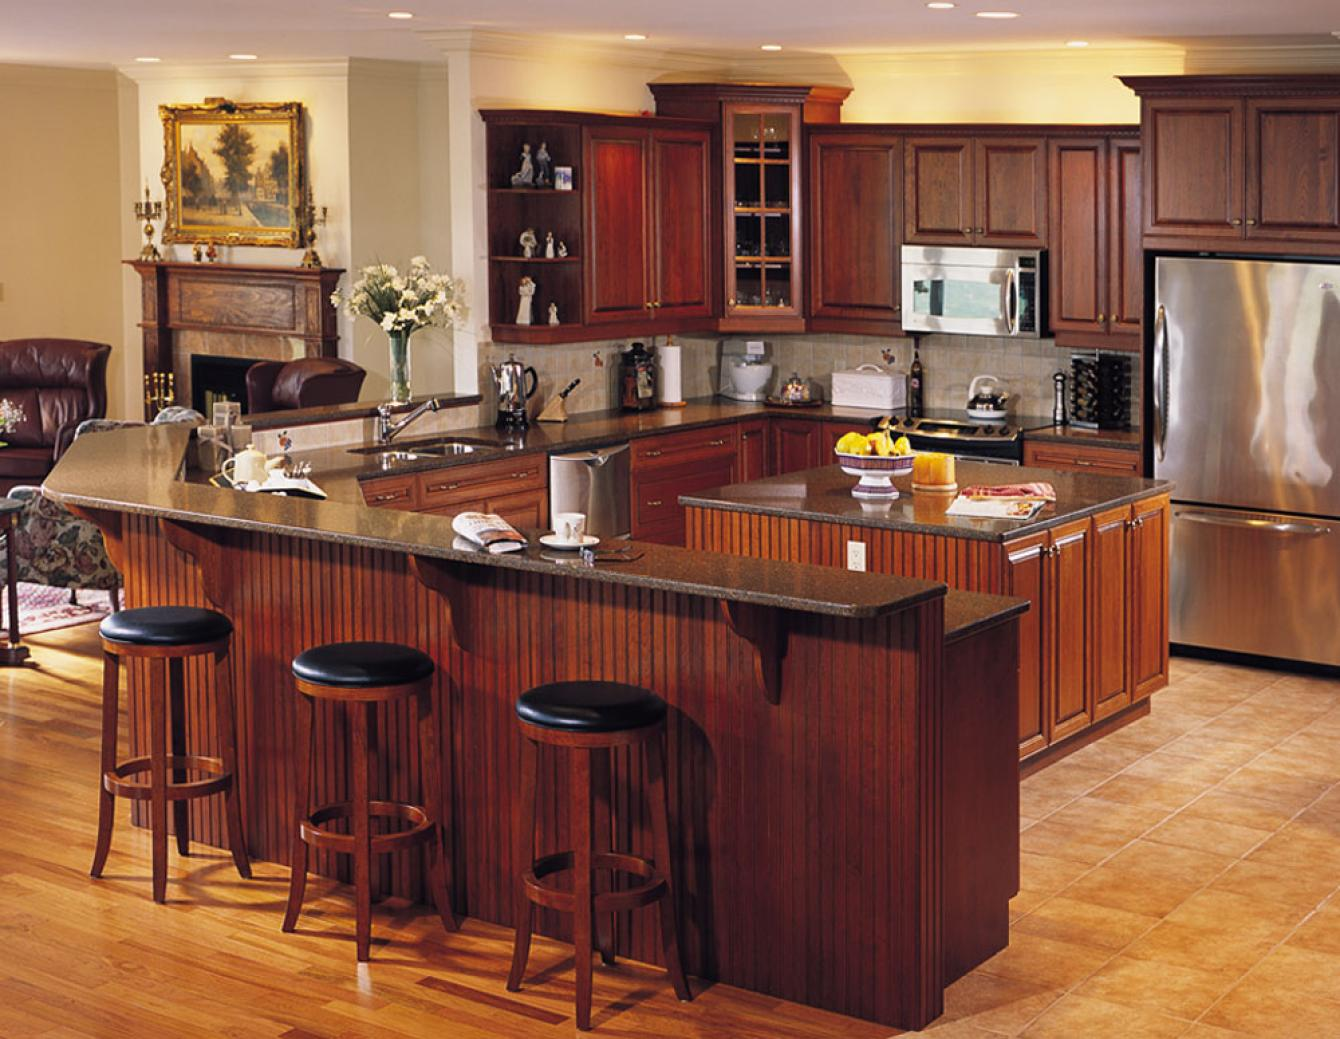 Traditional kitchen design gallery dover woods for Kitchen design gallery